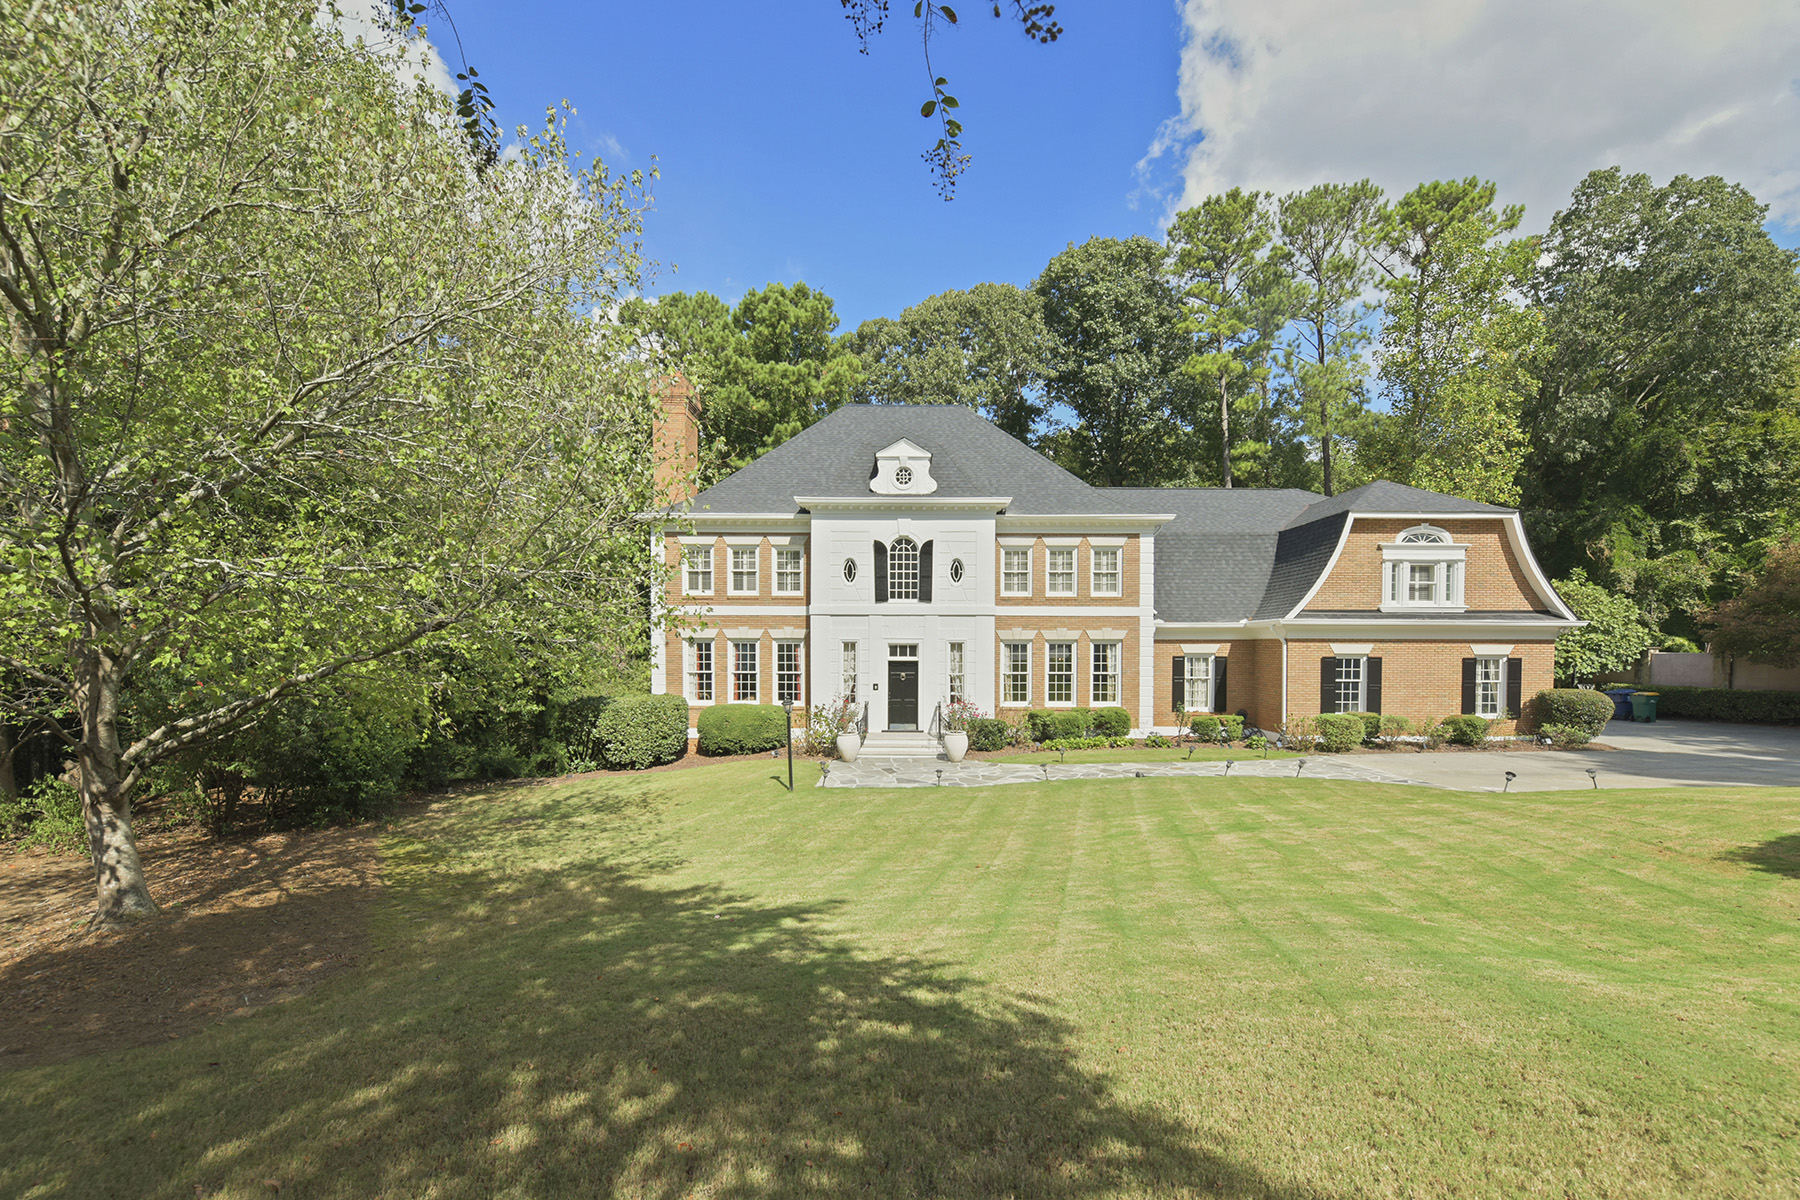 Property のために 売買 アット Brick Home With Dramatic Two Story Foyer, With Double Trey Ceilings 915 Marseilles Drive NW, Atlanta, ジョージア 30327 アメリカ